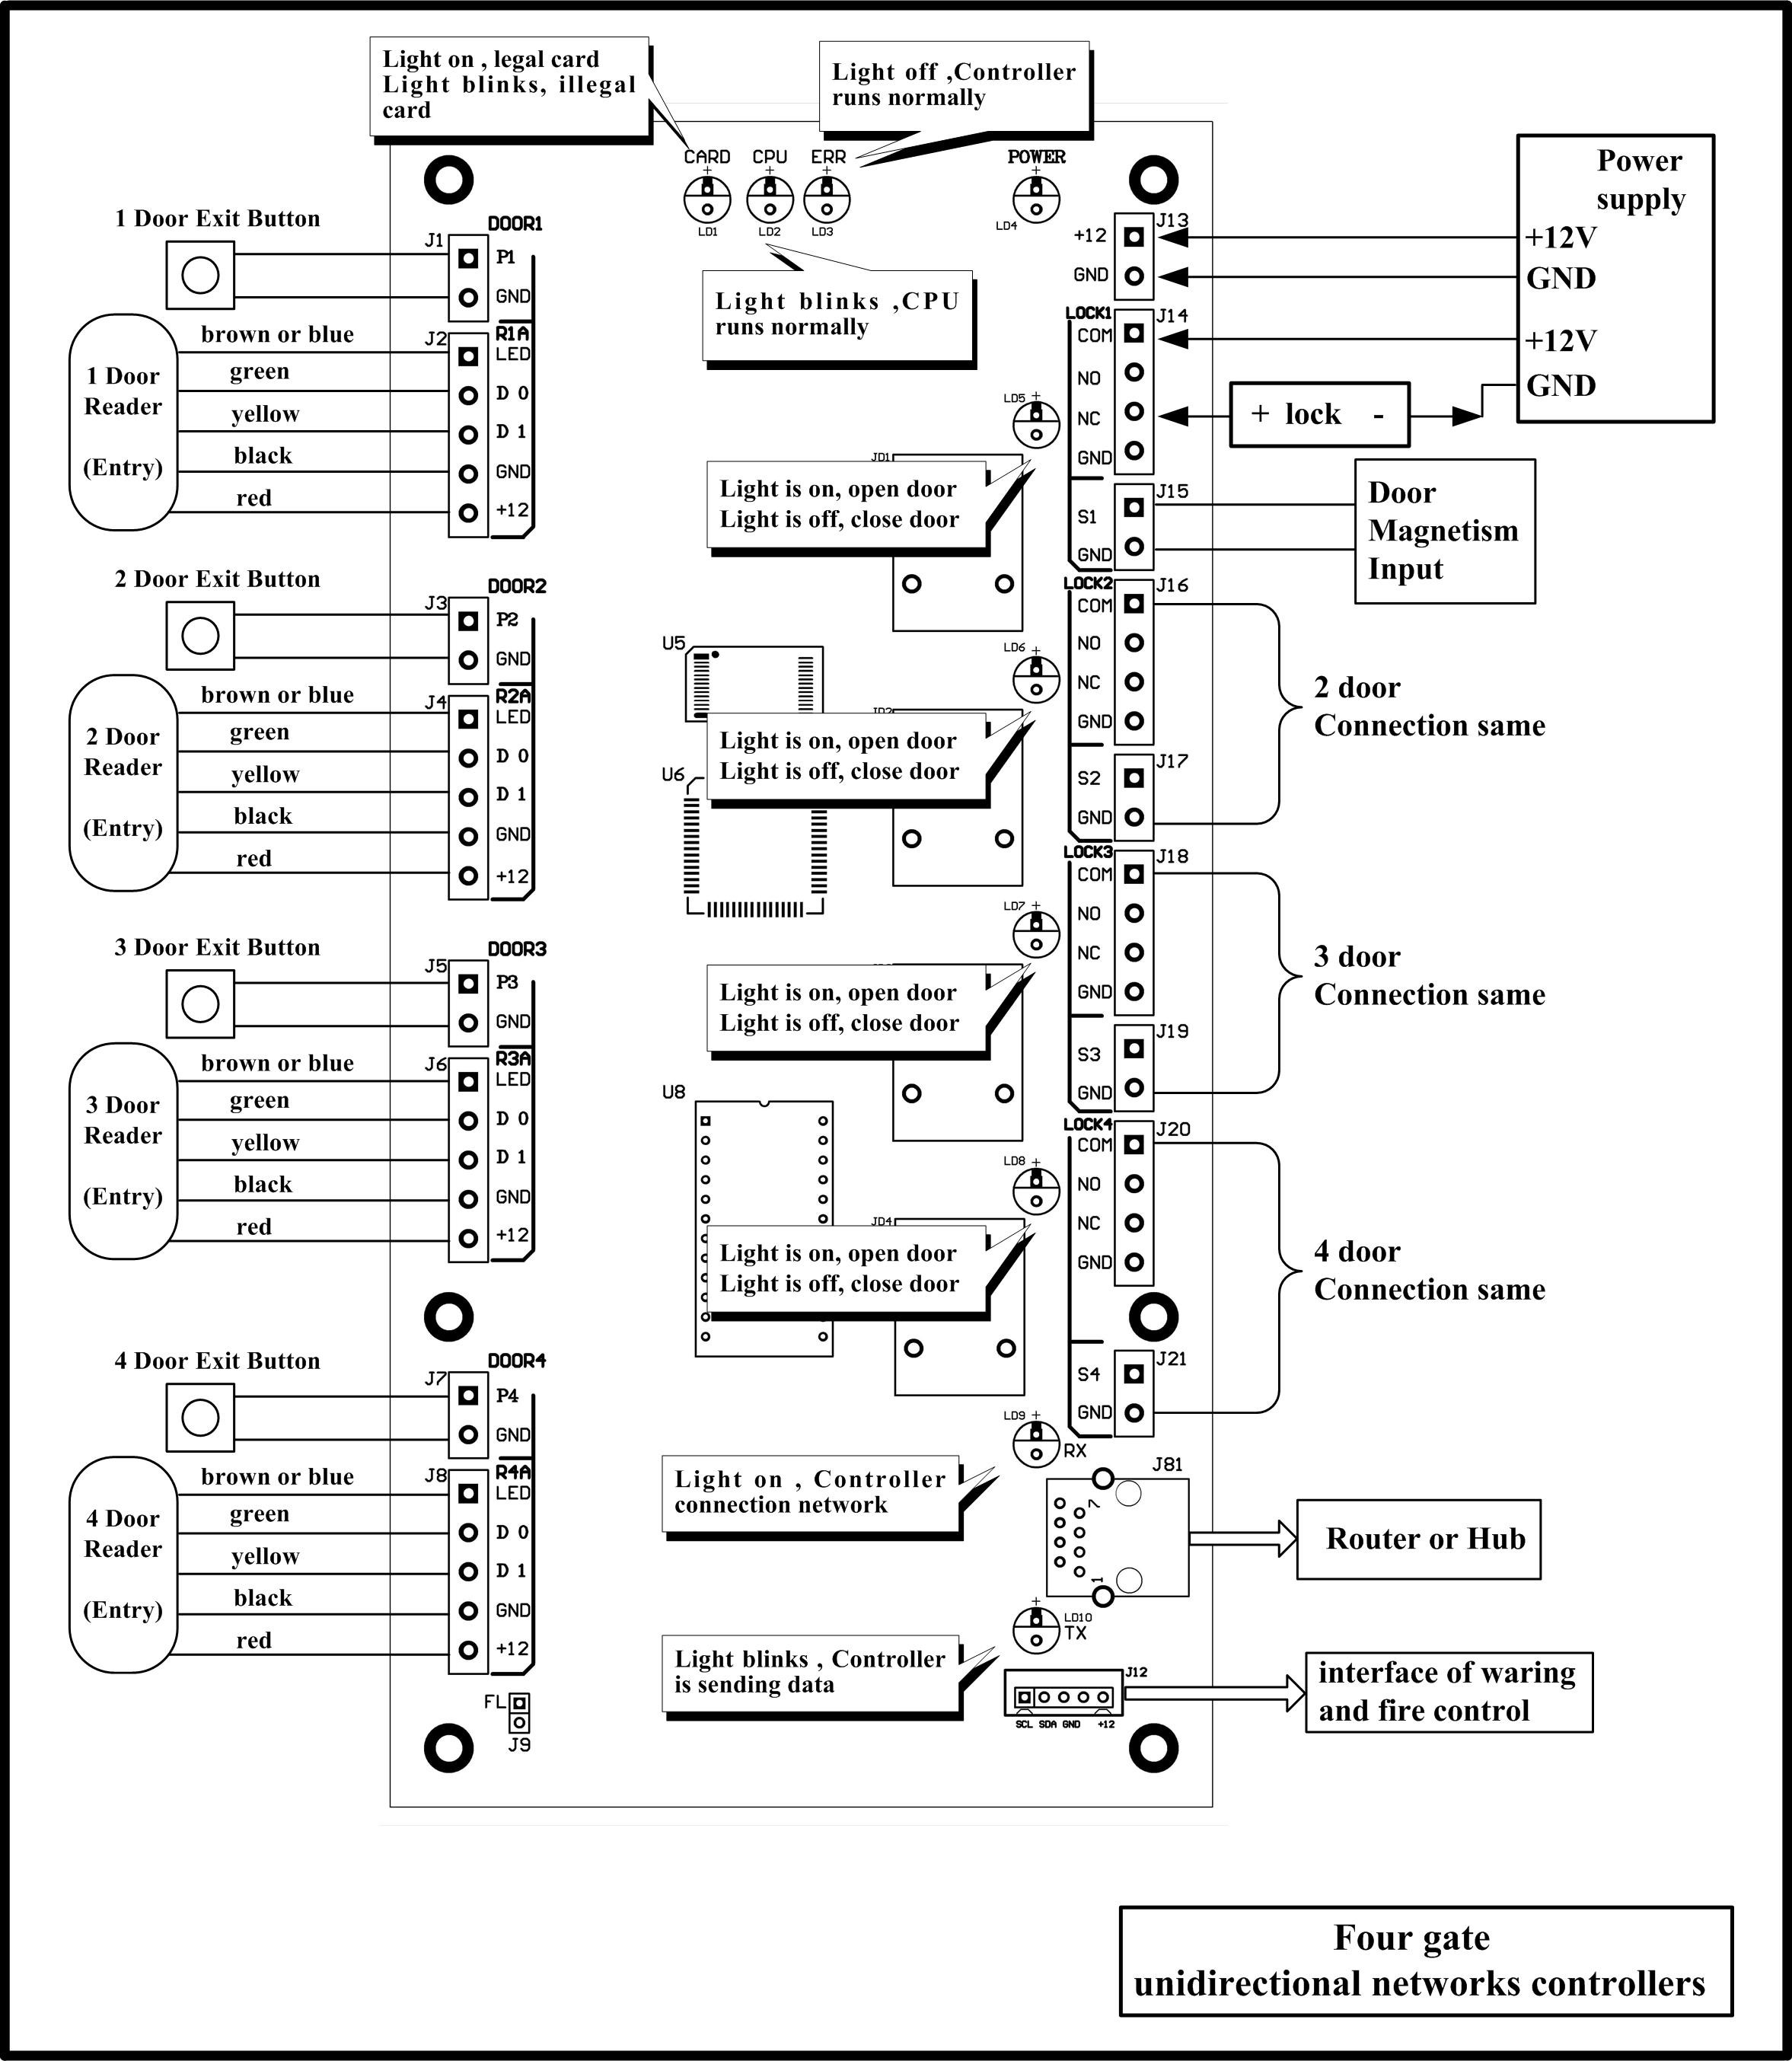 Access Control Wiring Diagram